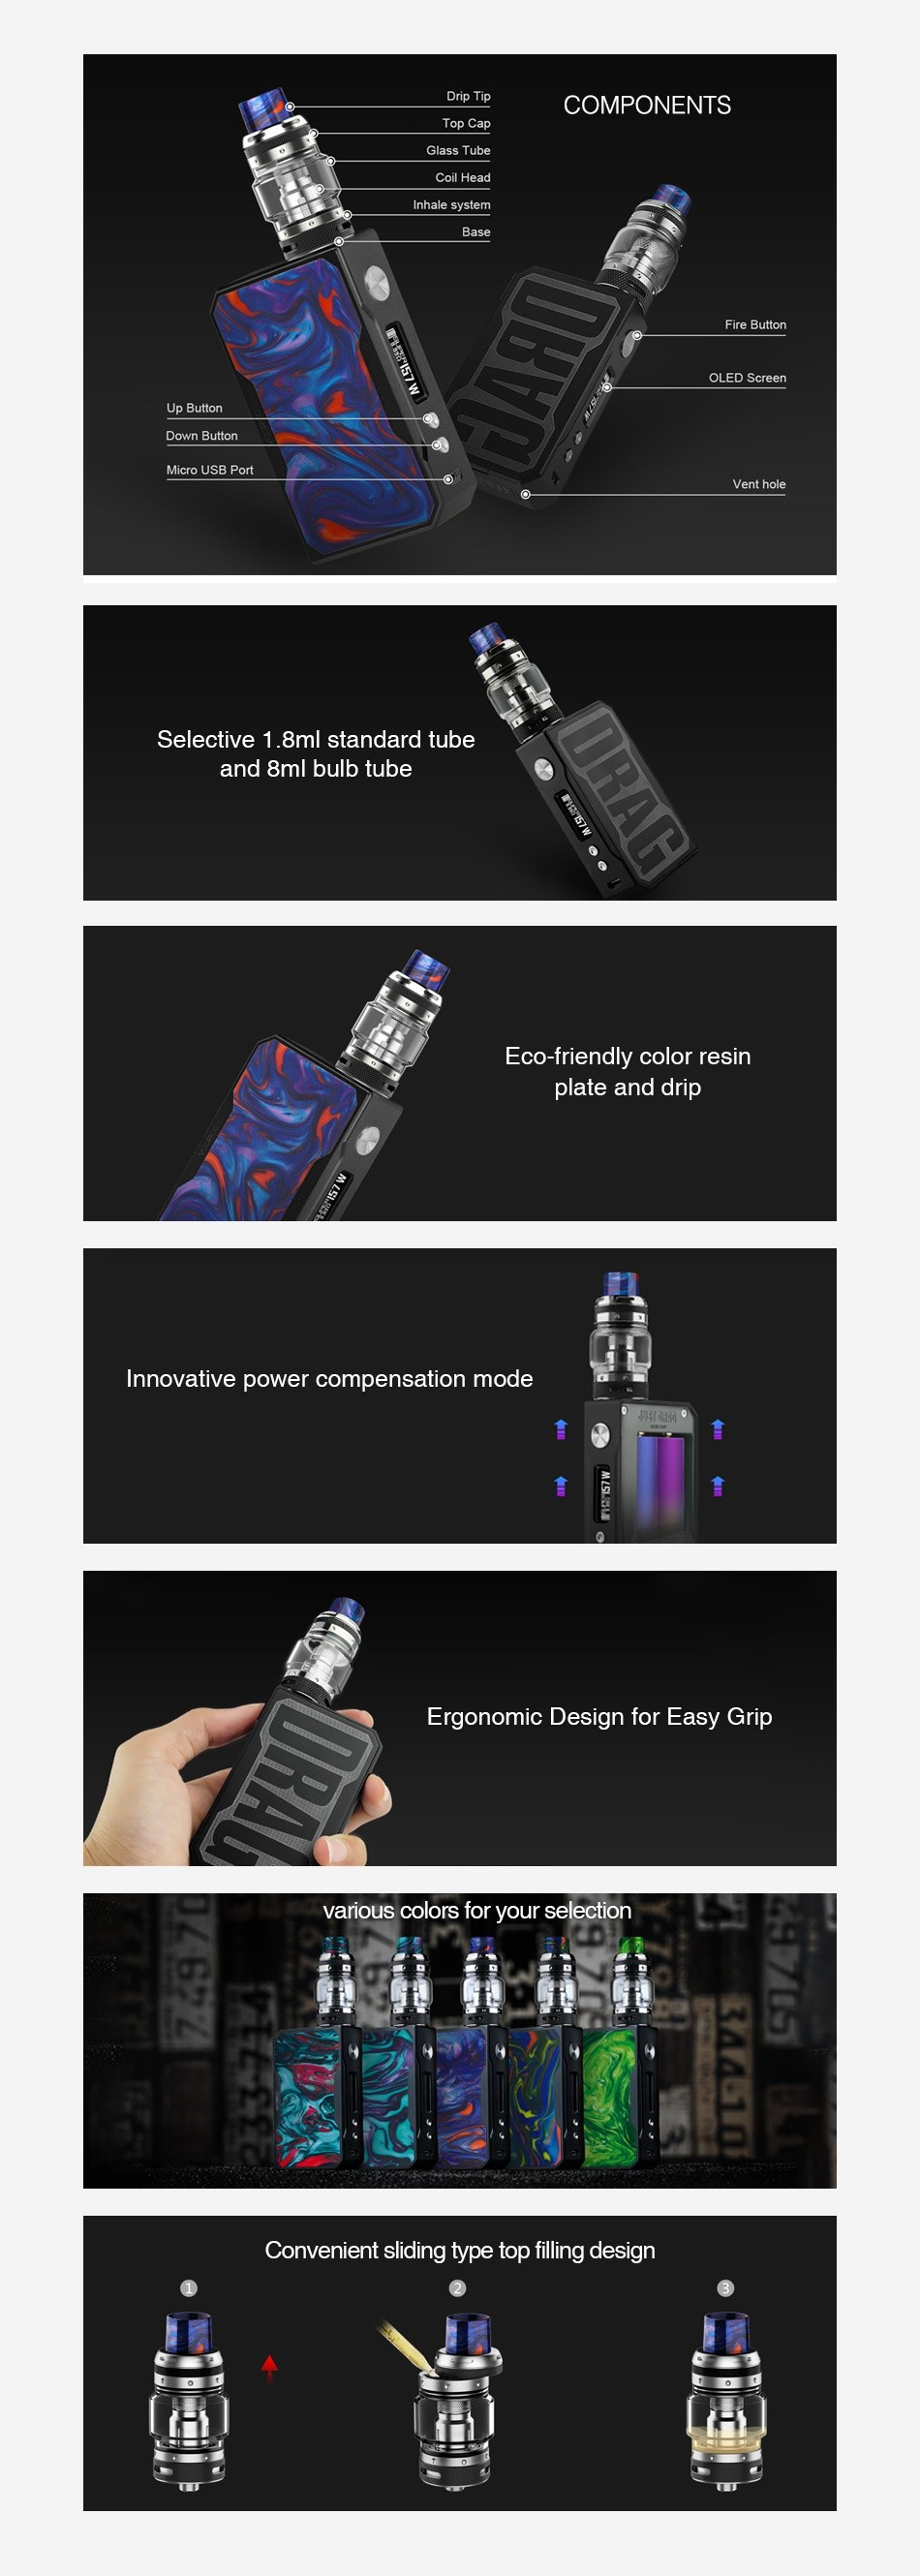 VOOPOO Black Drag 157W TC Kit with UFORCE T1 Inhale system LED Screen Up Button Micro UsB Port Vent hole elective 1  8ml standard tube and 8ml bulb tube Eco friendly color resin plate and drip Innovative power compensation mode Ergonomic Design for Easy Grip arious colors for your selection  Convenient sliding type top filling design